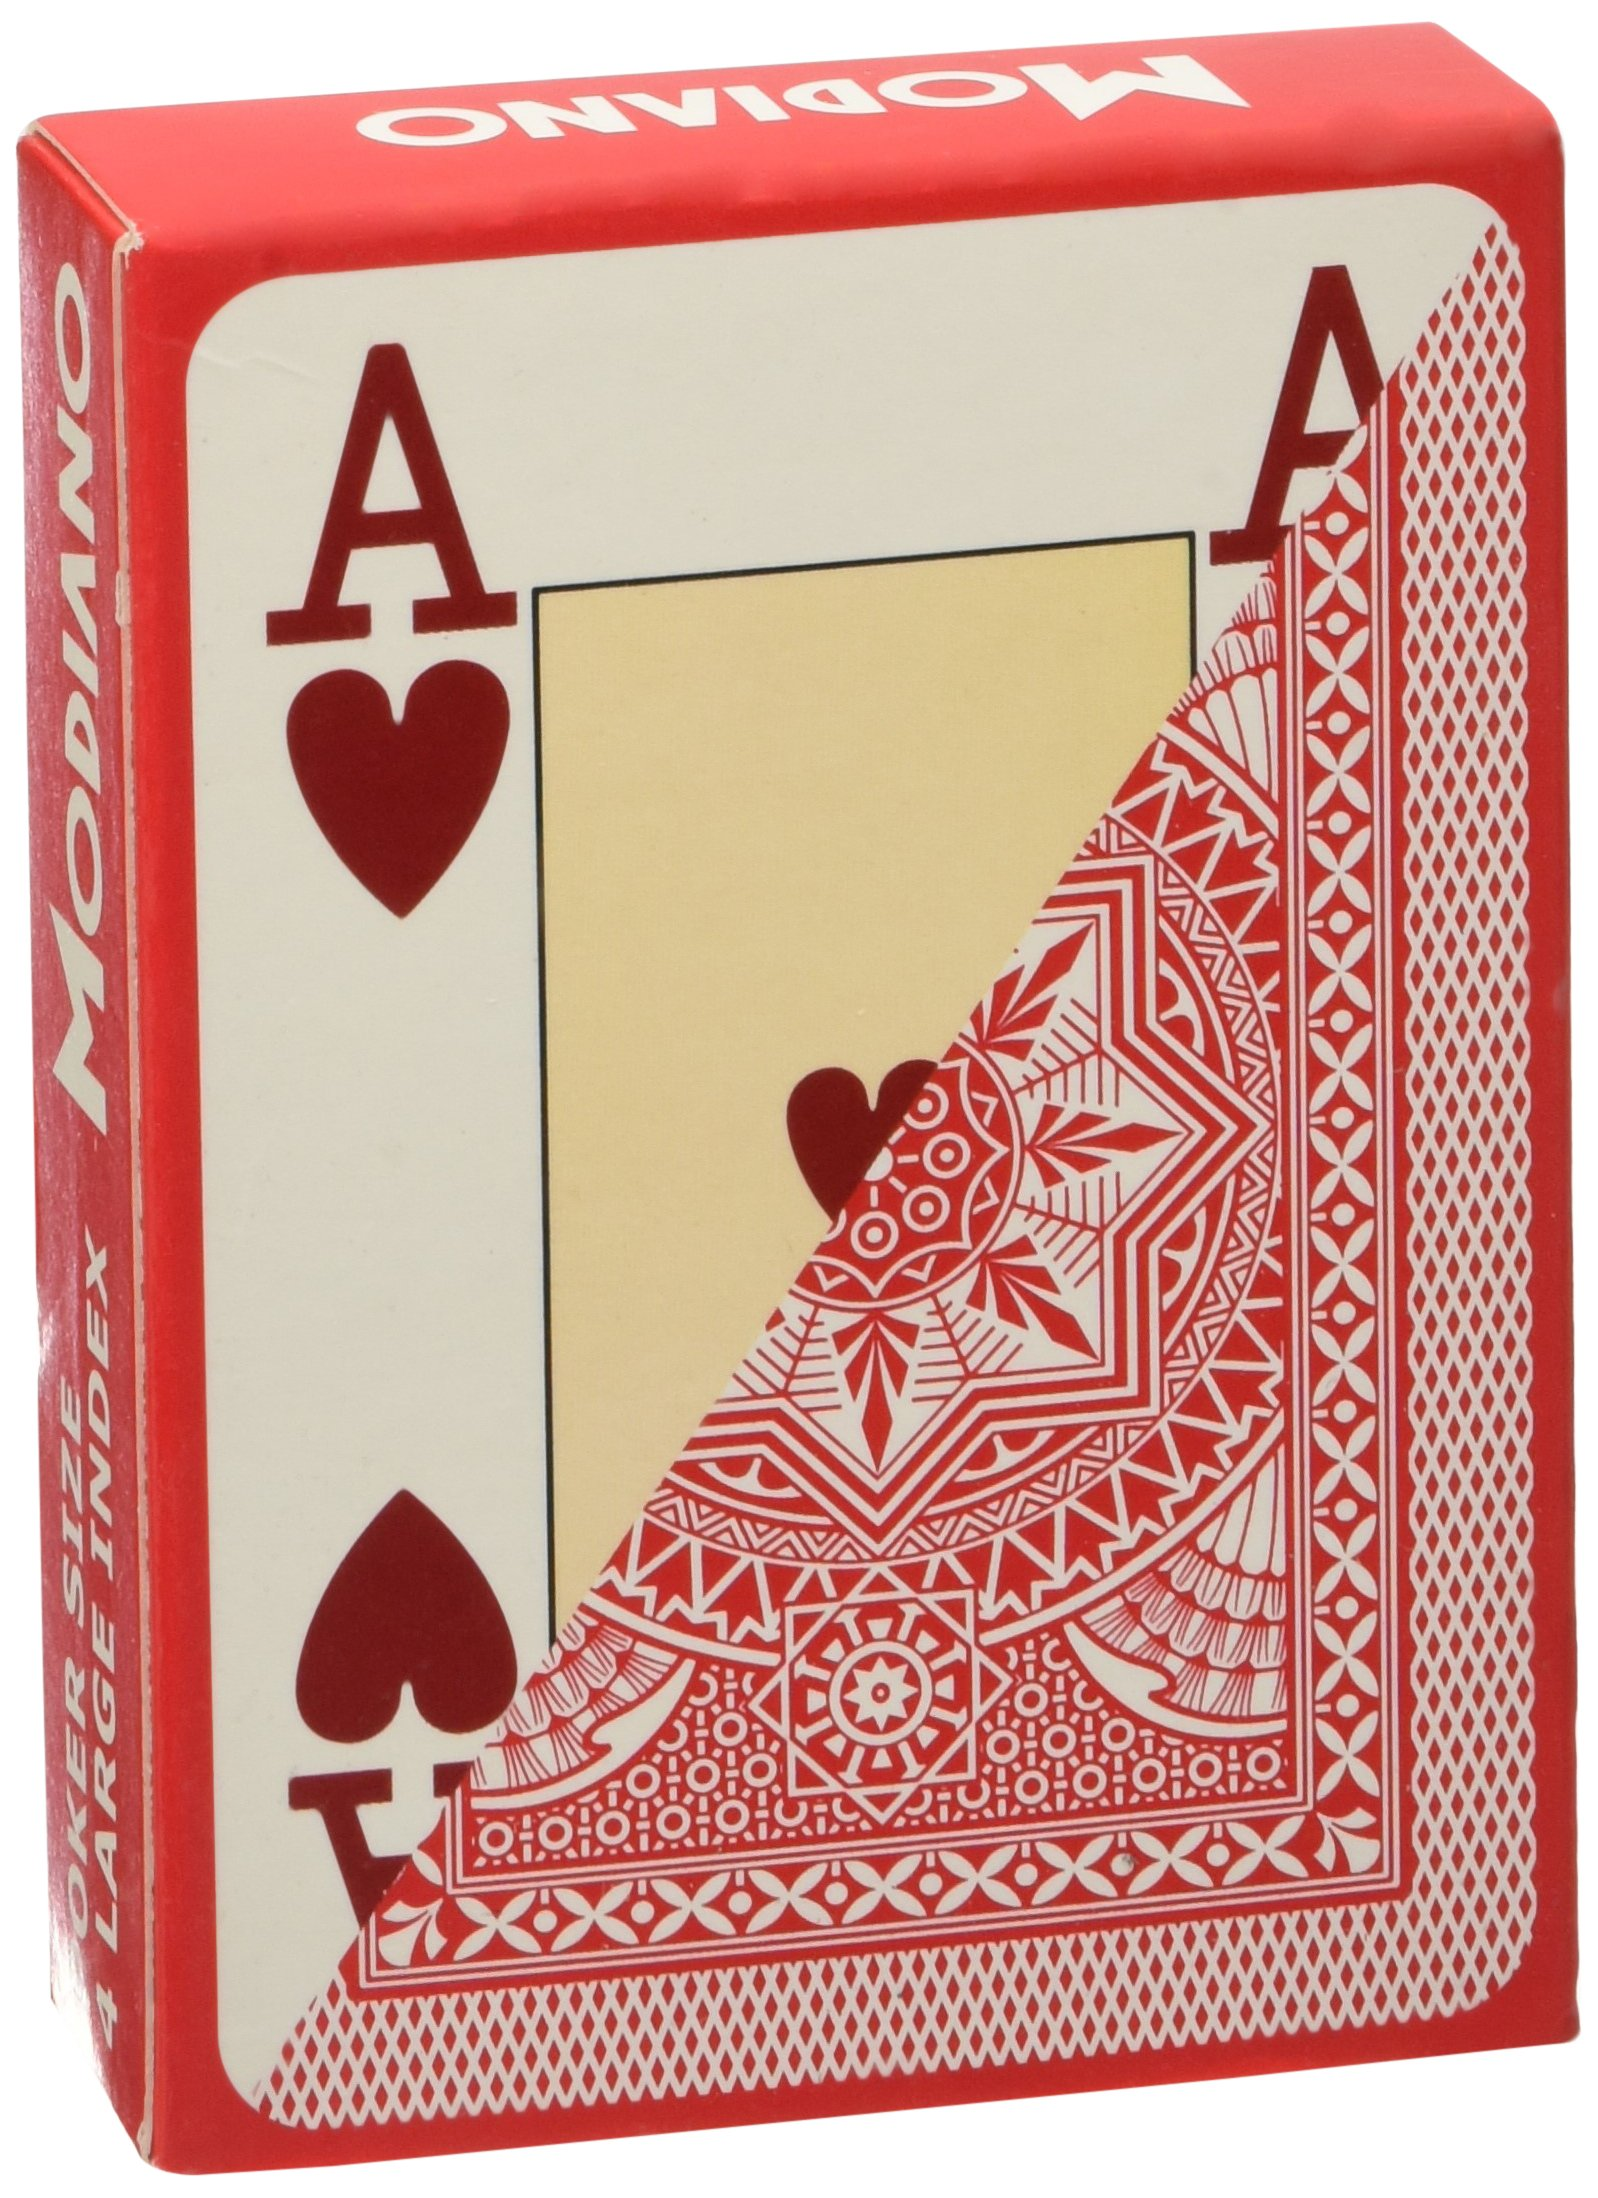 Modiano Italian Poker Game Playing Cards - RED Poker - Large 4 Index - Single Card Deck - 100% Plastic Made in Italy by Modiano (Image #2)